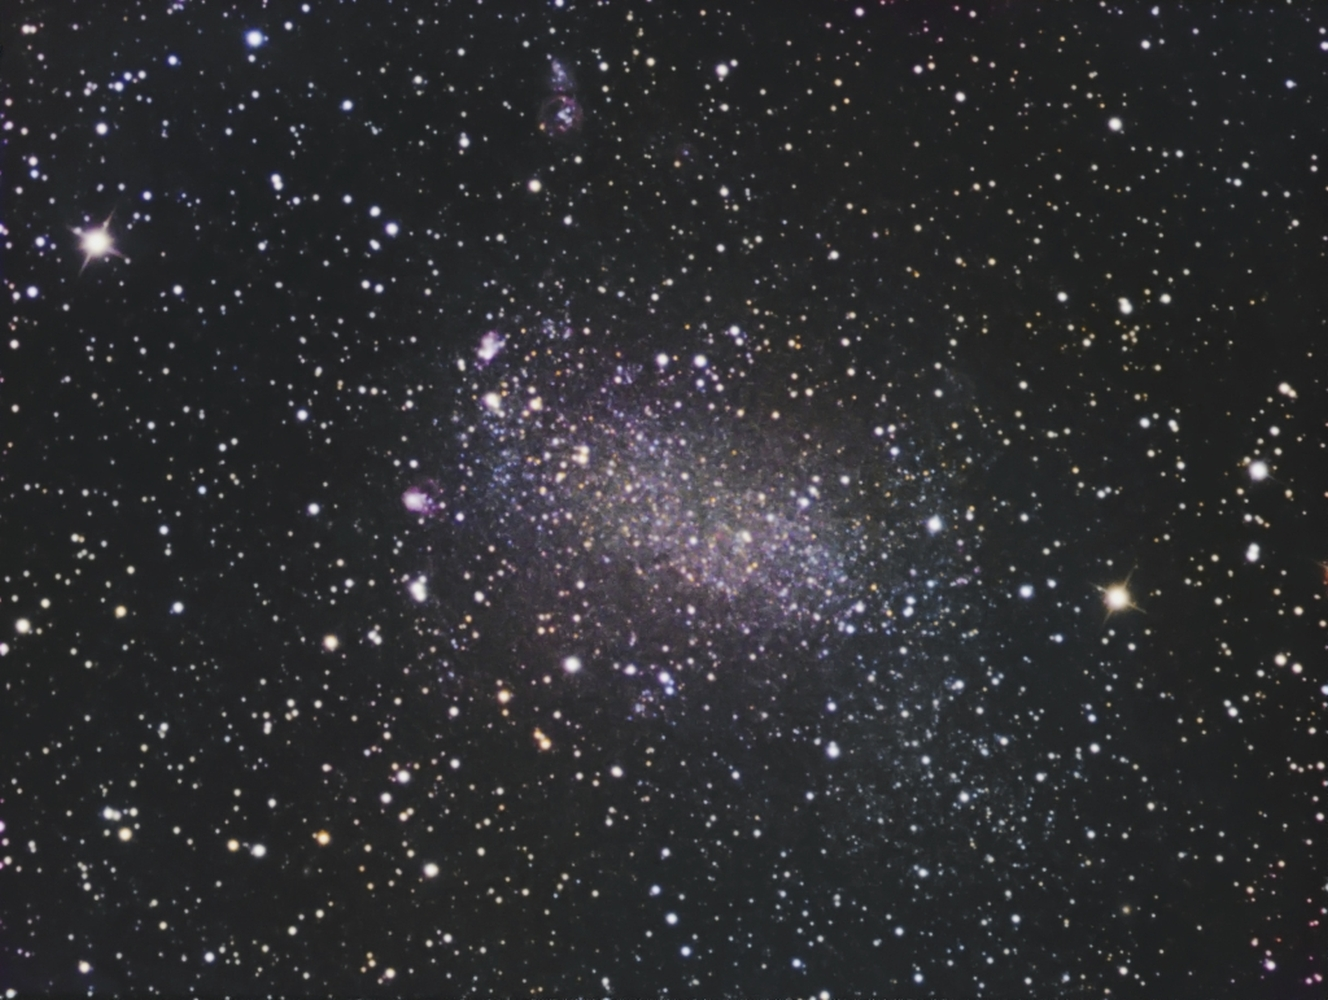 NGC 6822 from BMV Observatories